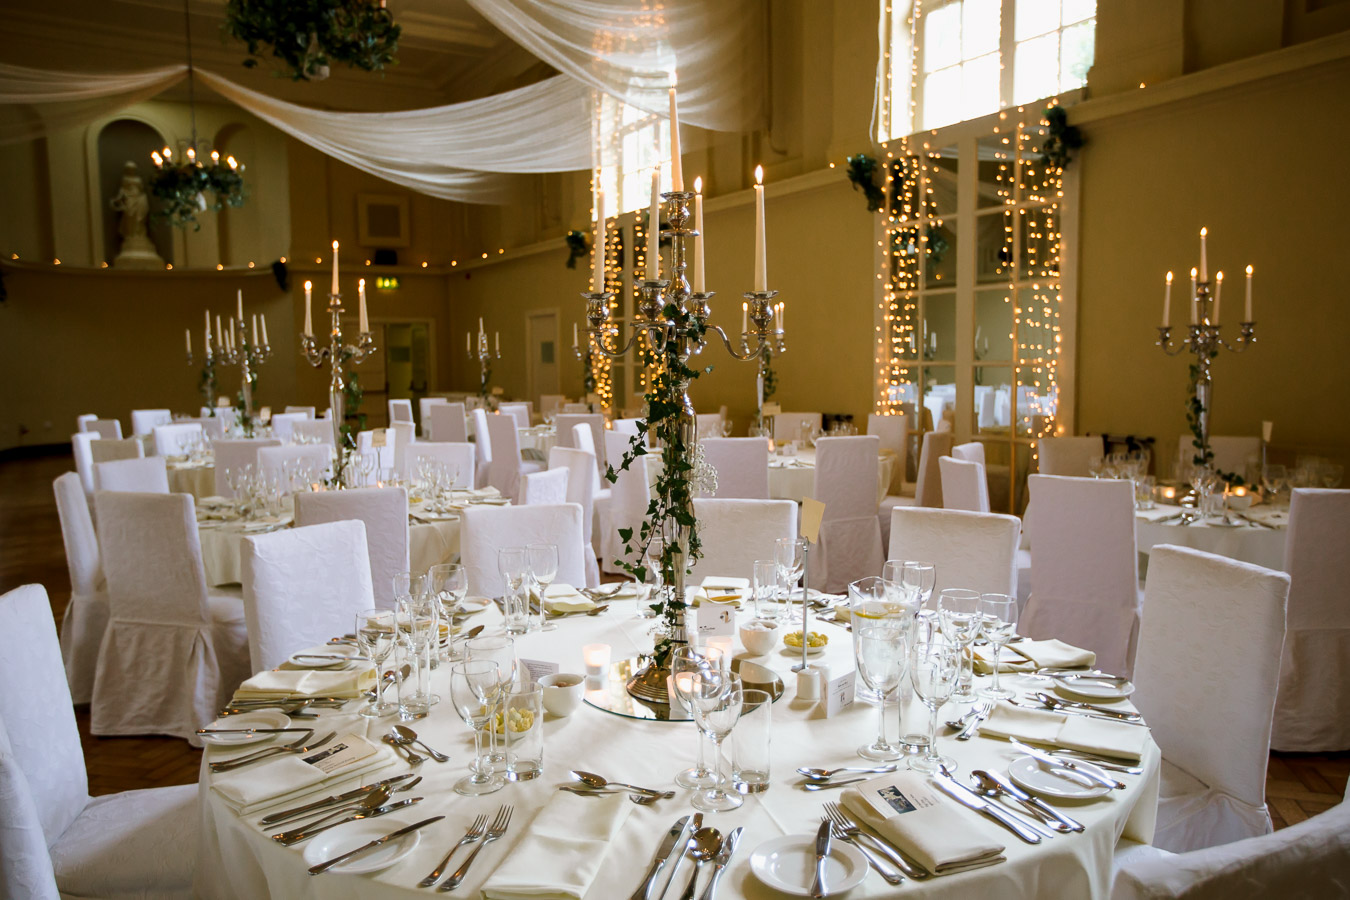 kilshane house function room